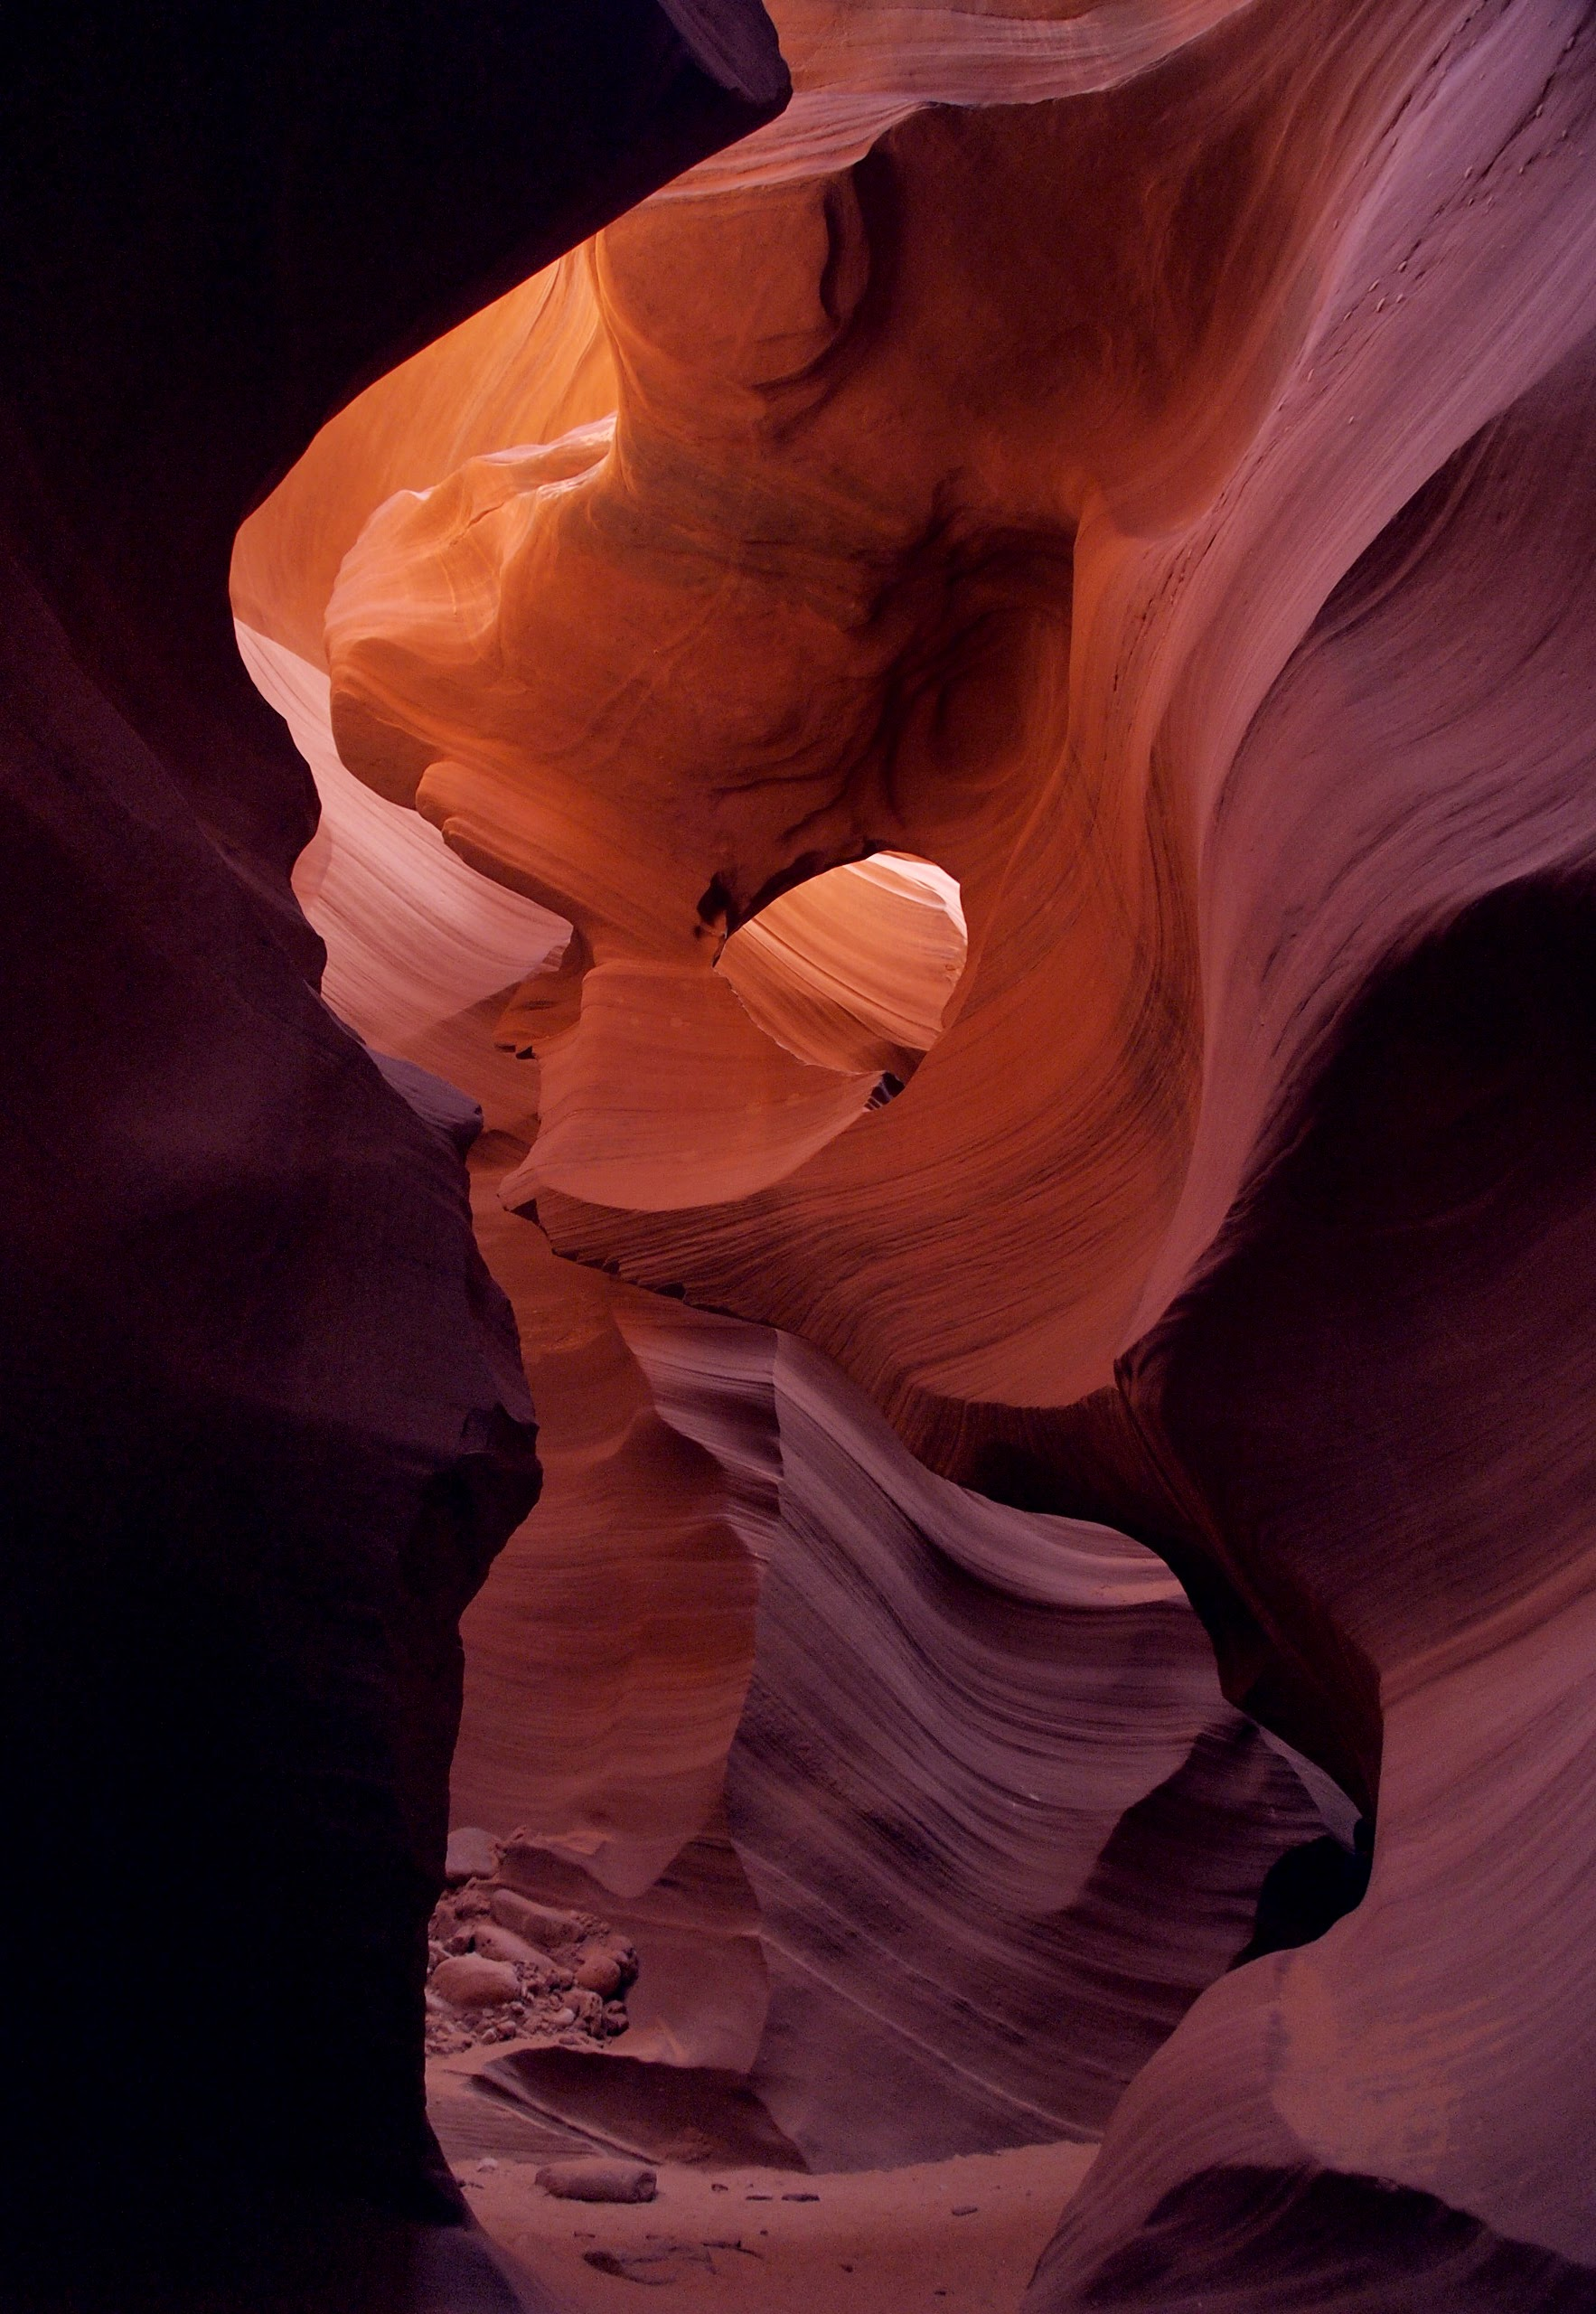 More shots from the Lower Antelope Canyon